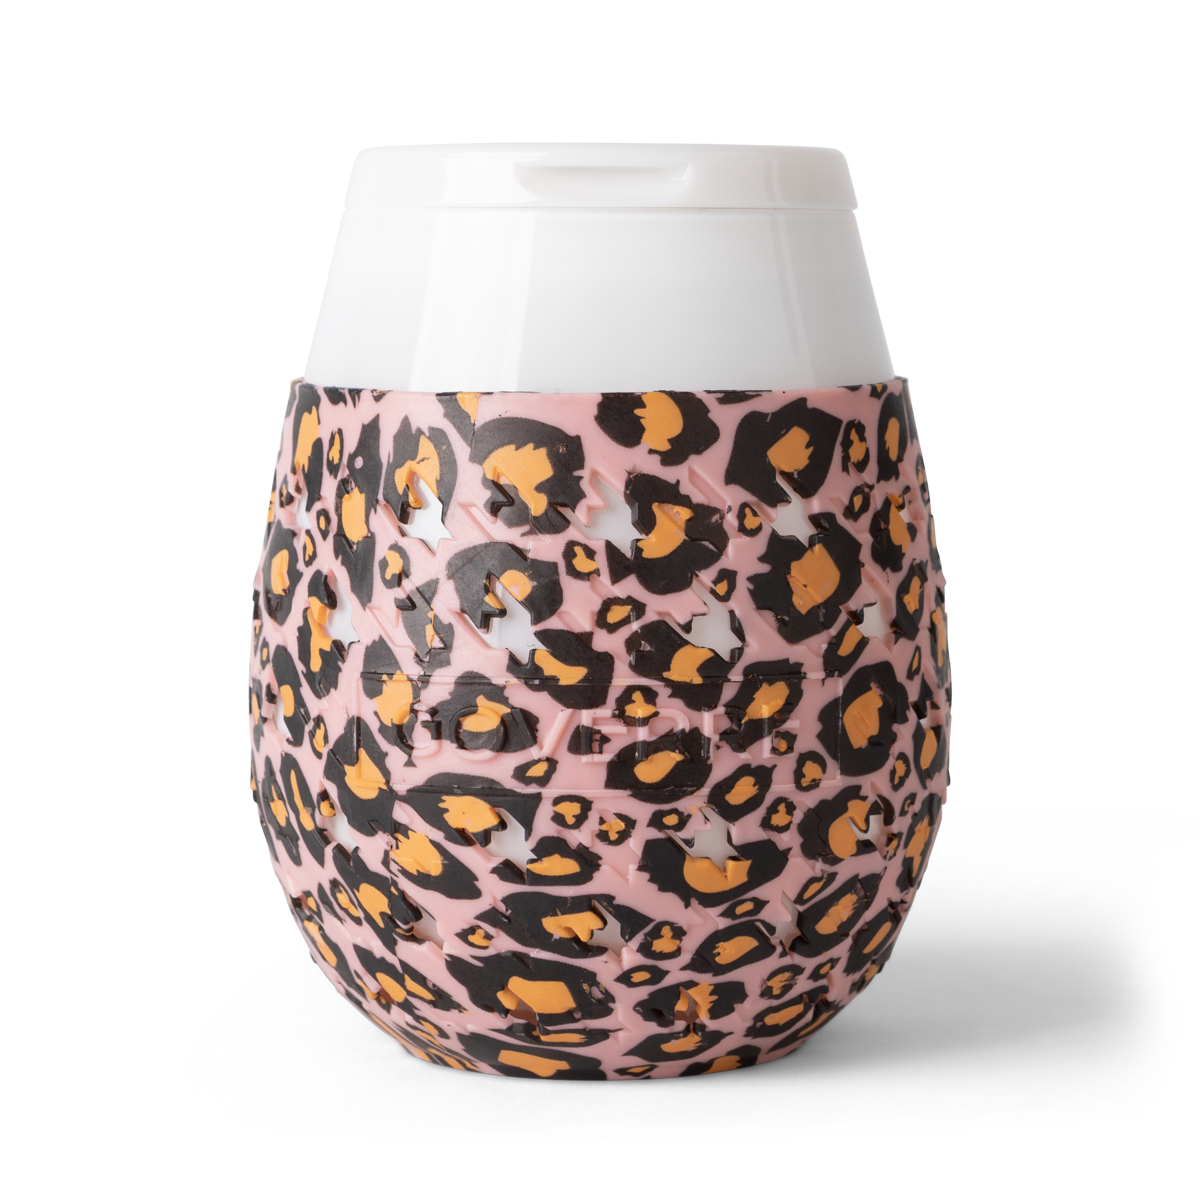 Goverre Portable Stemless Wine Glass - Pink Leopard